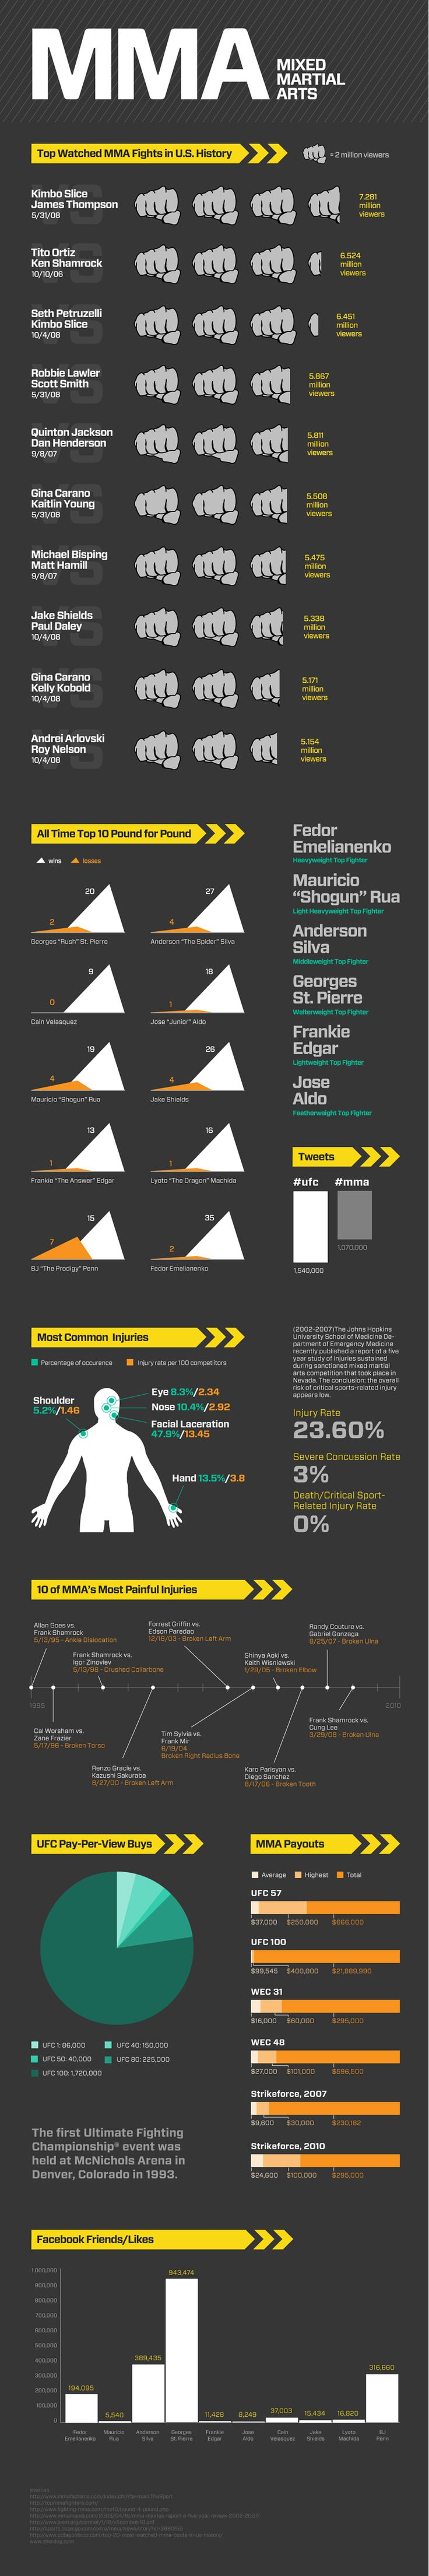 #Infographic: MMA By The Numbers